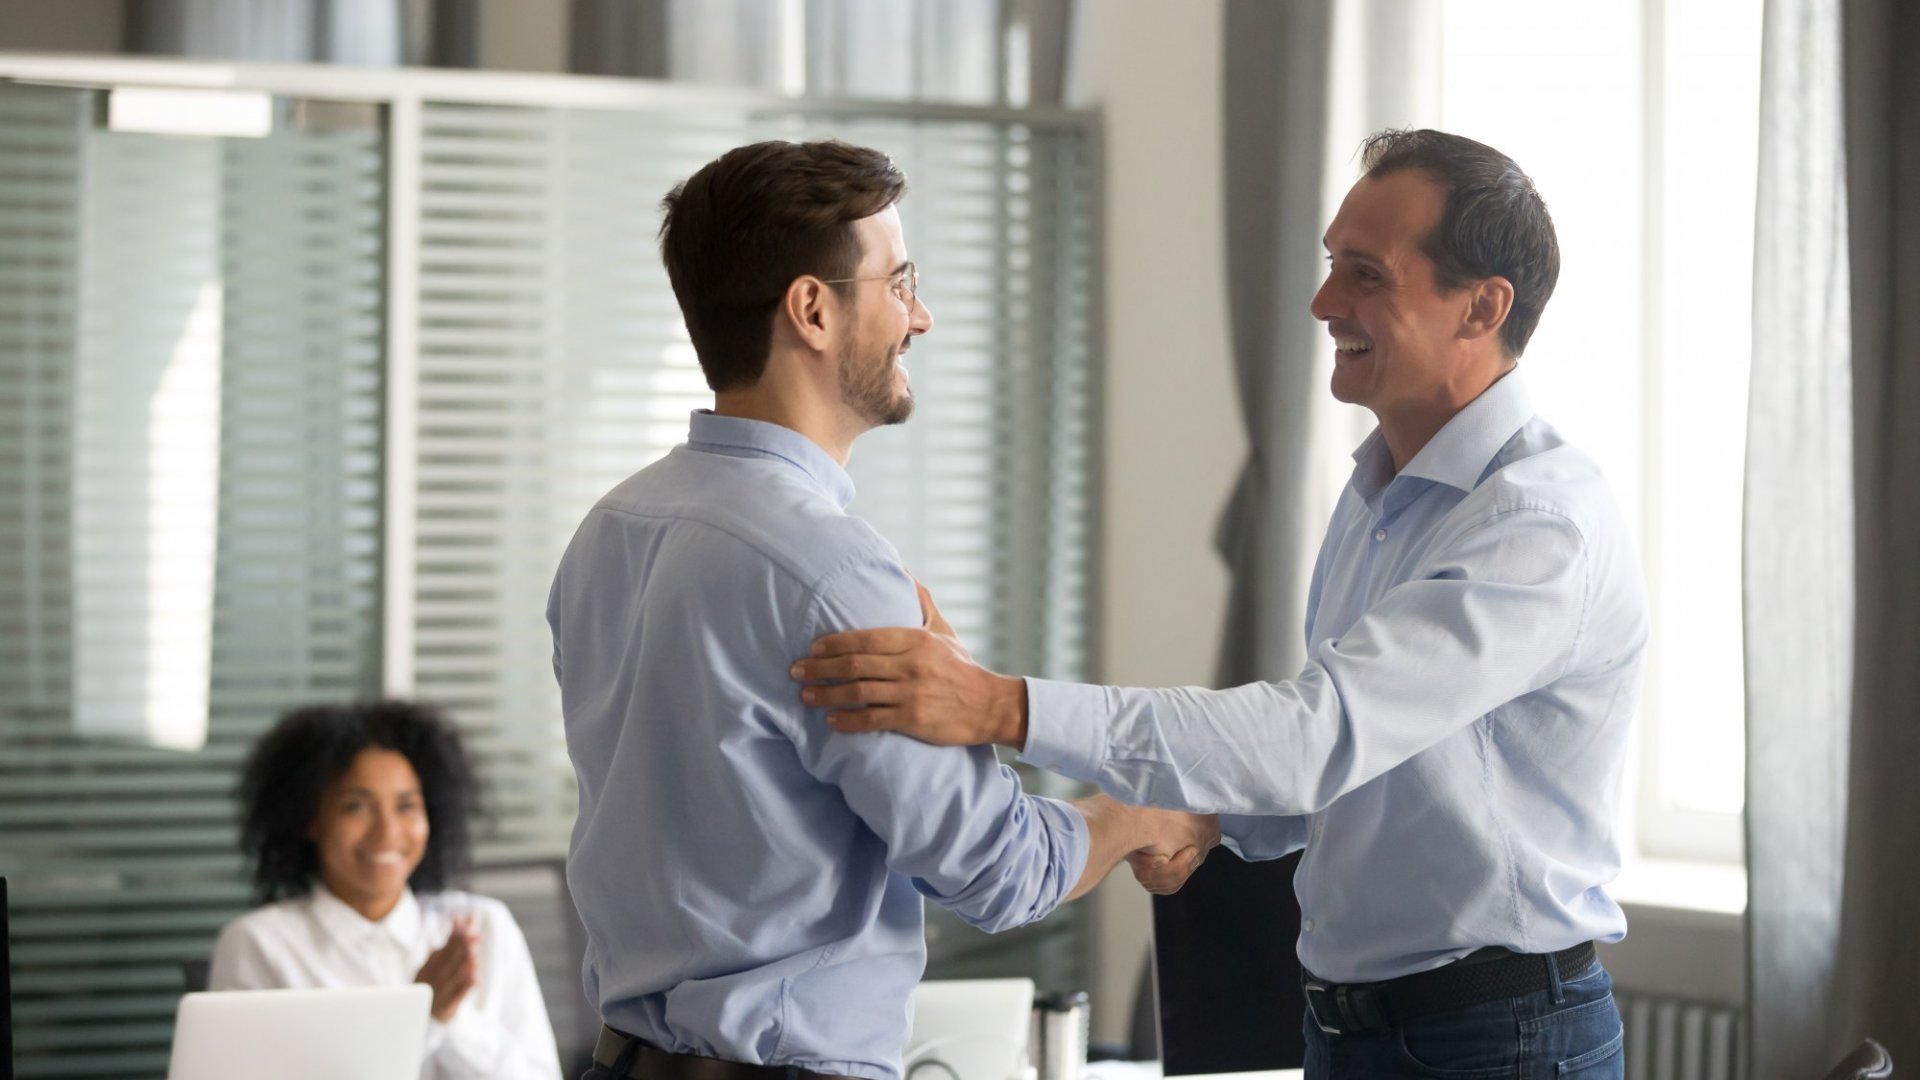 Leader showing appreciation to employee